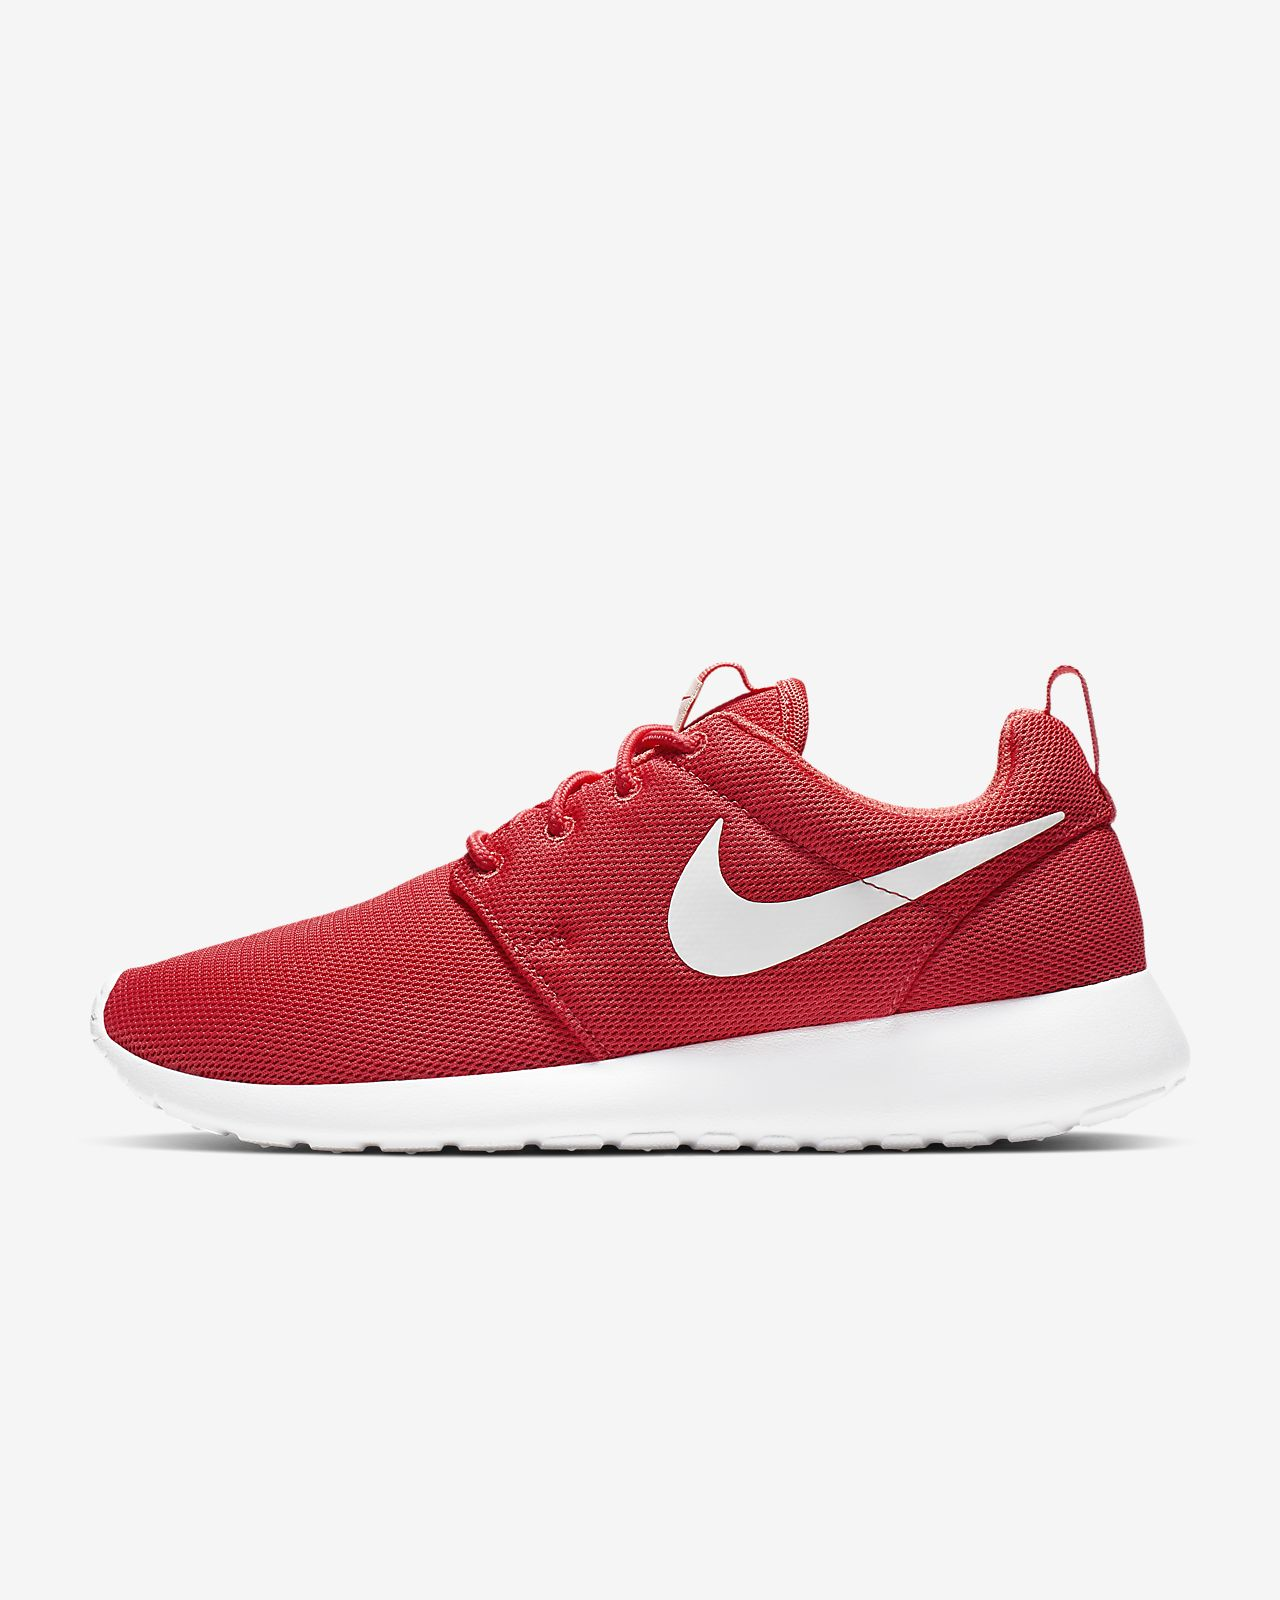 27995db44e23 Nike Roshe One Women s Shoe. Nike.com